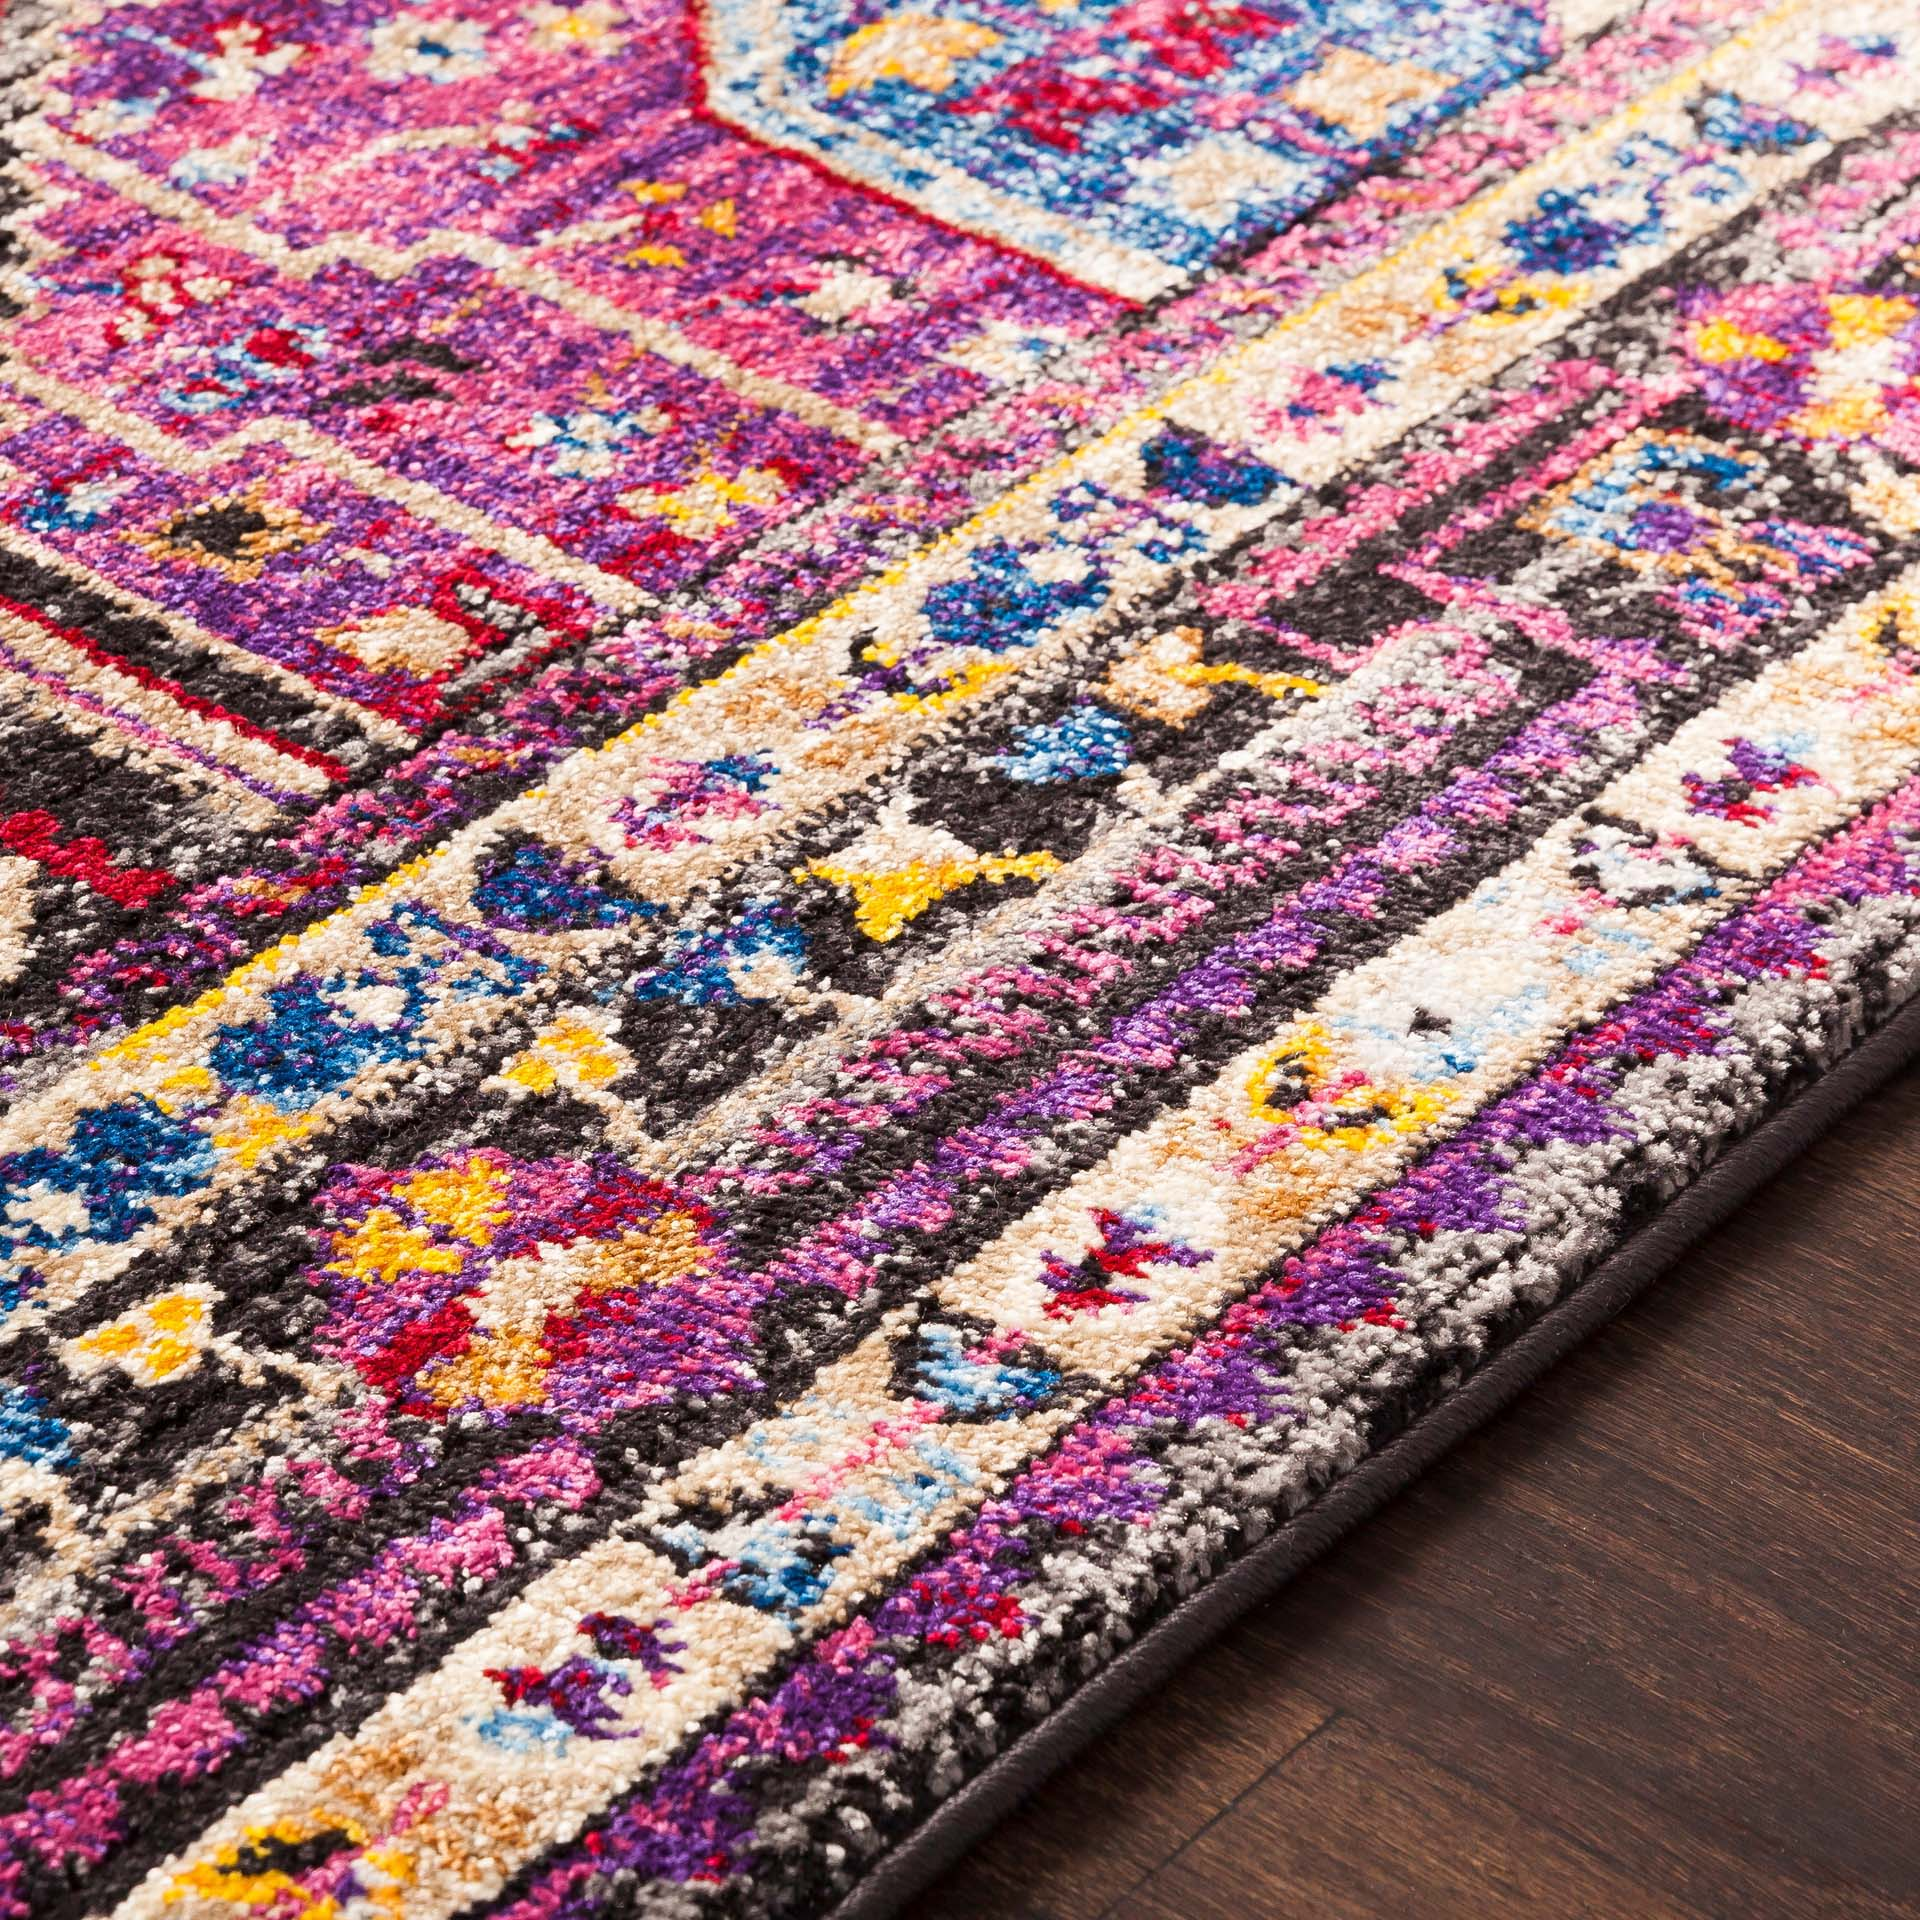 Unique and colorful Turkish 5' x 7' area rug with strong hints of pink from the Alchemy collection - Close Up